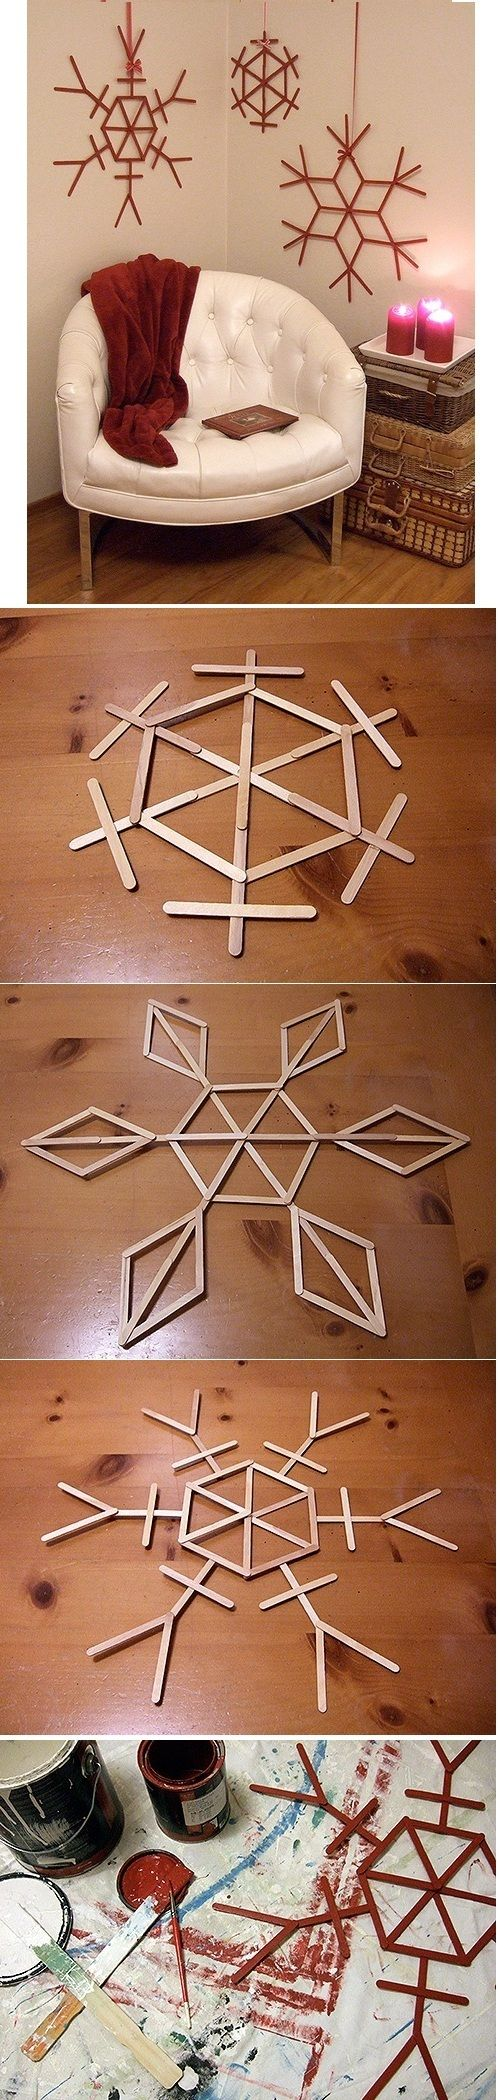 popsicle stick snowflakes, @Moira Dawson Dawson Matthews can we do this?!